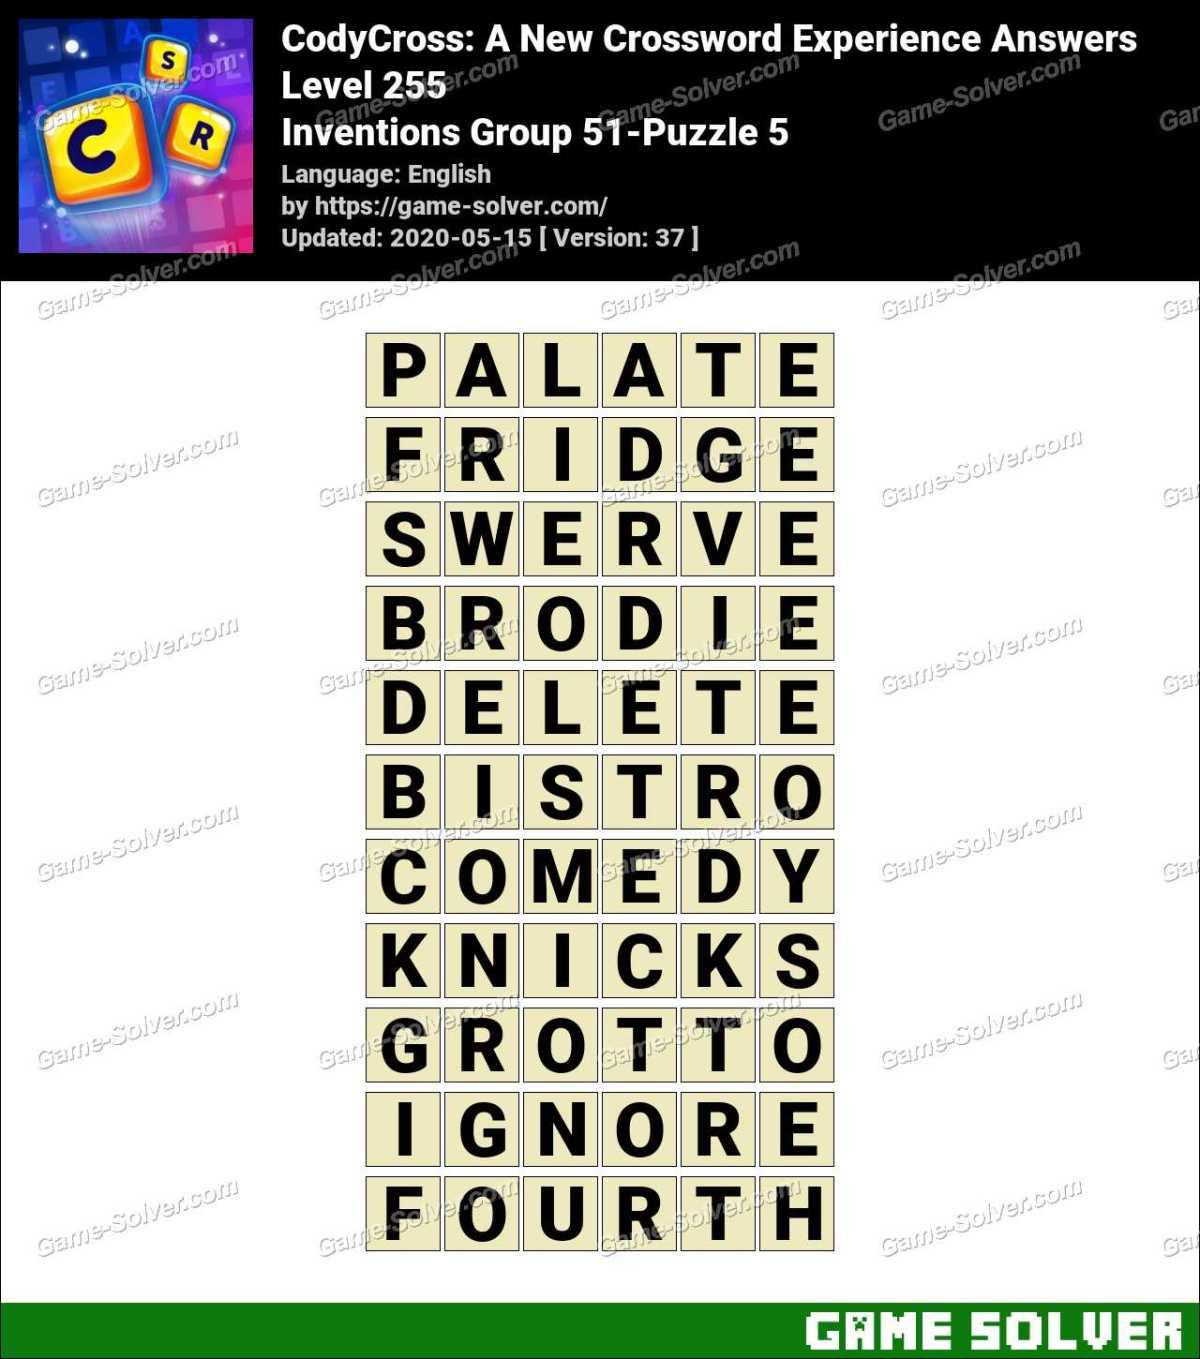 CodyCross Inventions Group 51-Puzzle 5 Answers